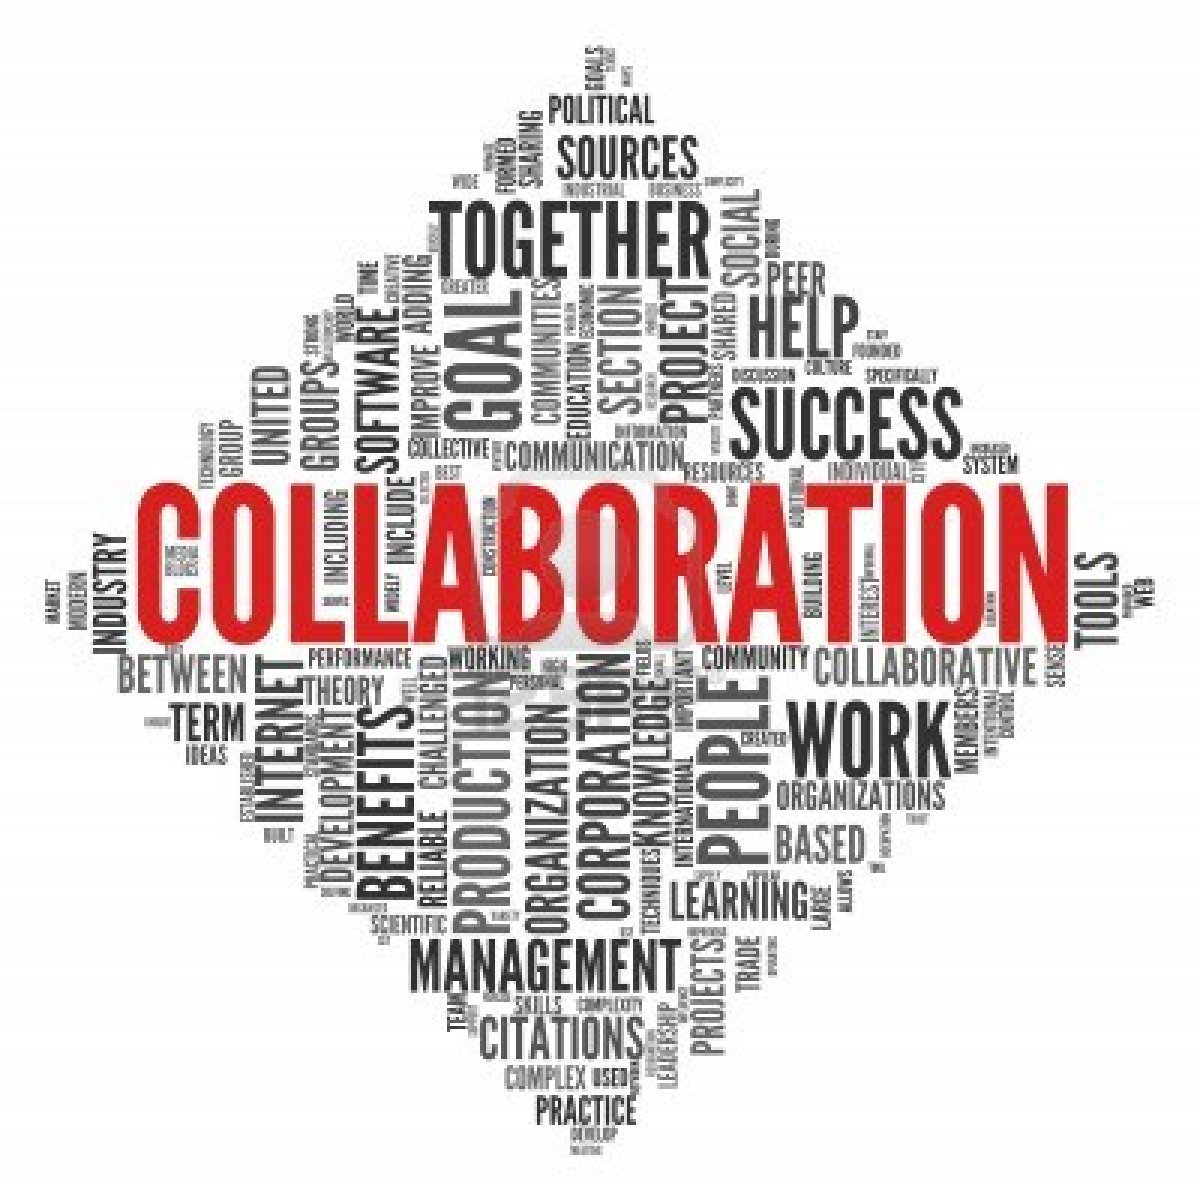 We've increased the number of chat partners; we are expanding to include new collaborations too - #MacroSW https://t.co/LyRstXUtxZ